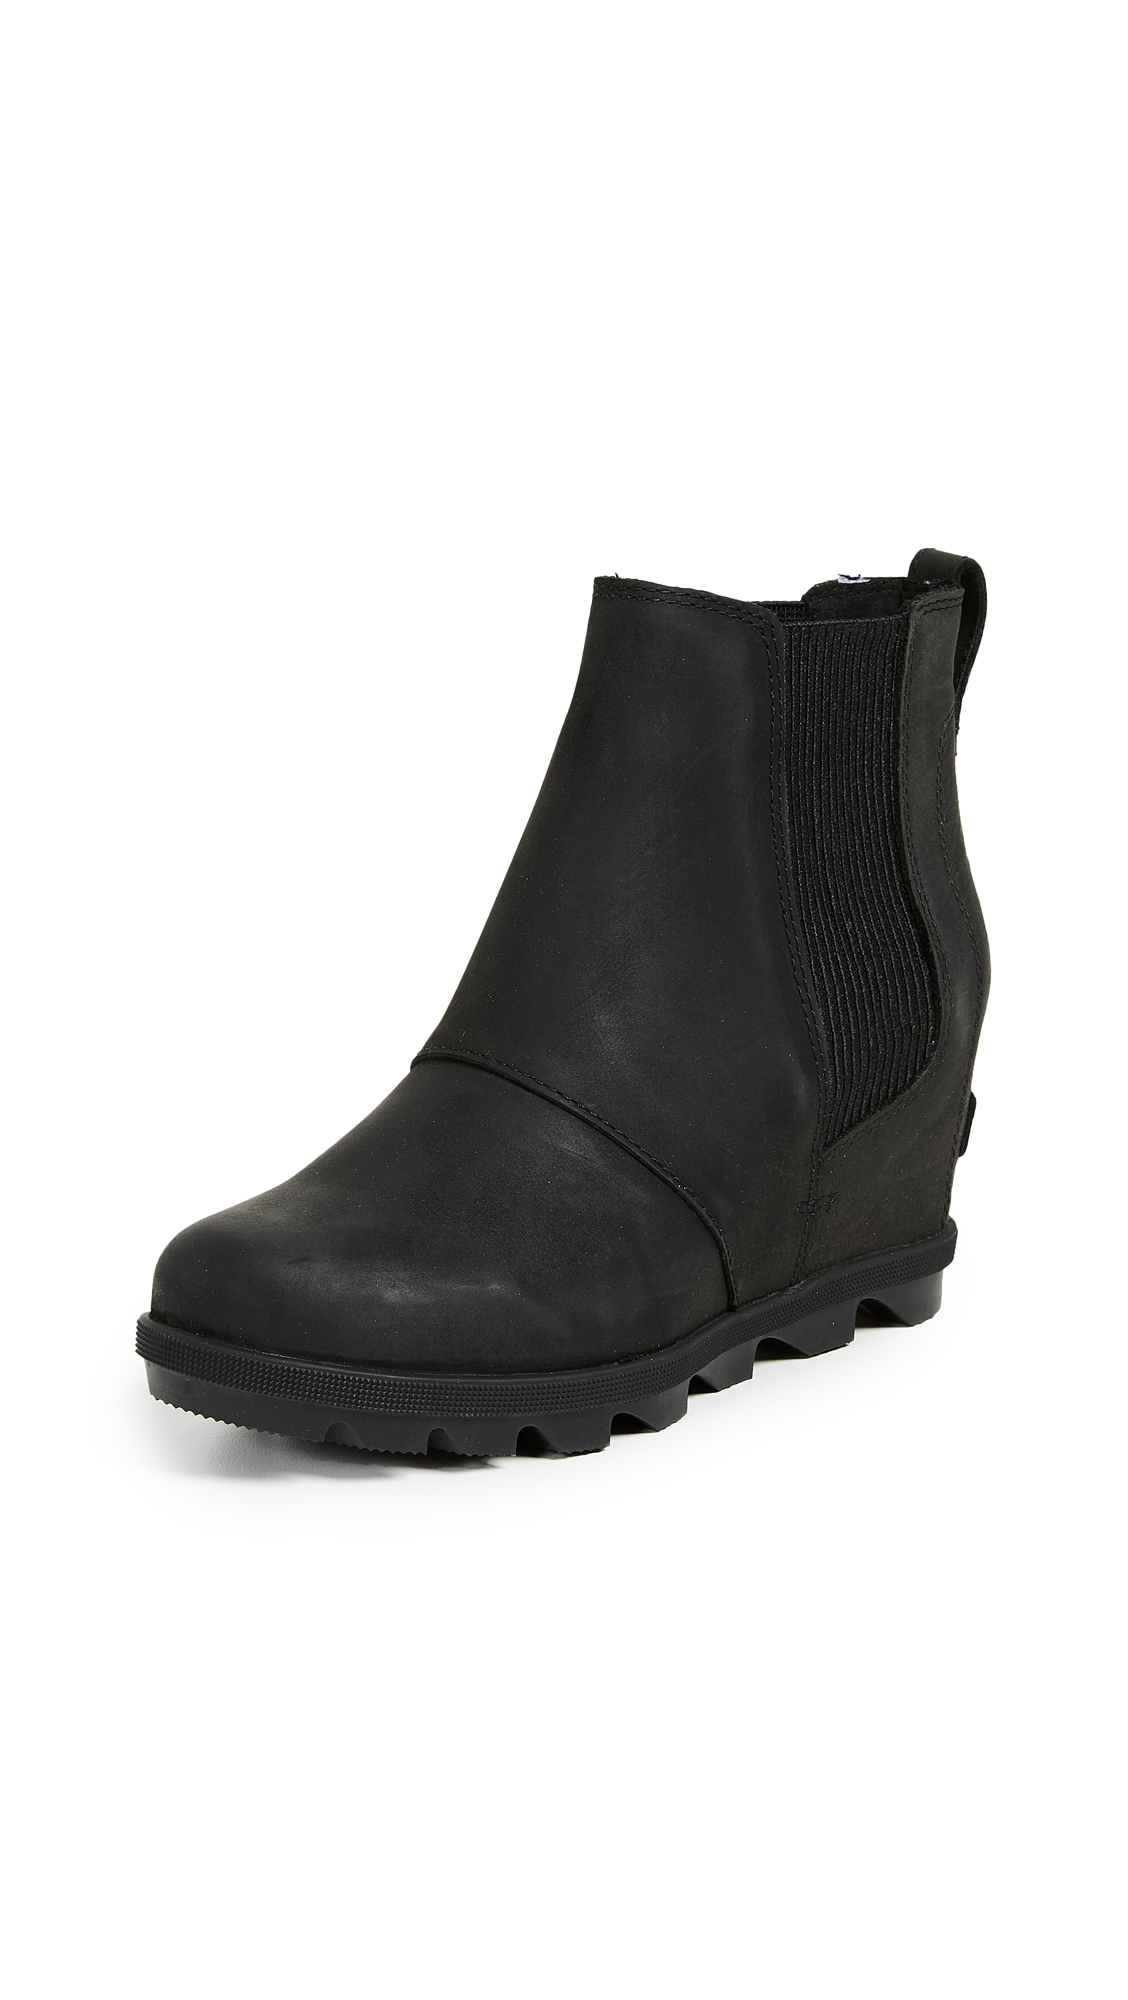 Sorel Joan of Arctic Wedge II Chelsea Boots - 40% Off Sale